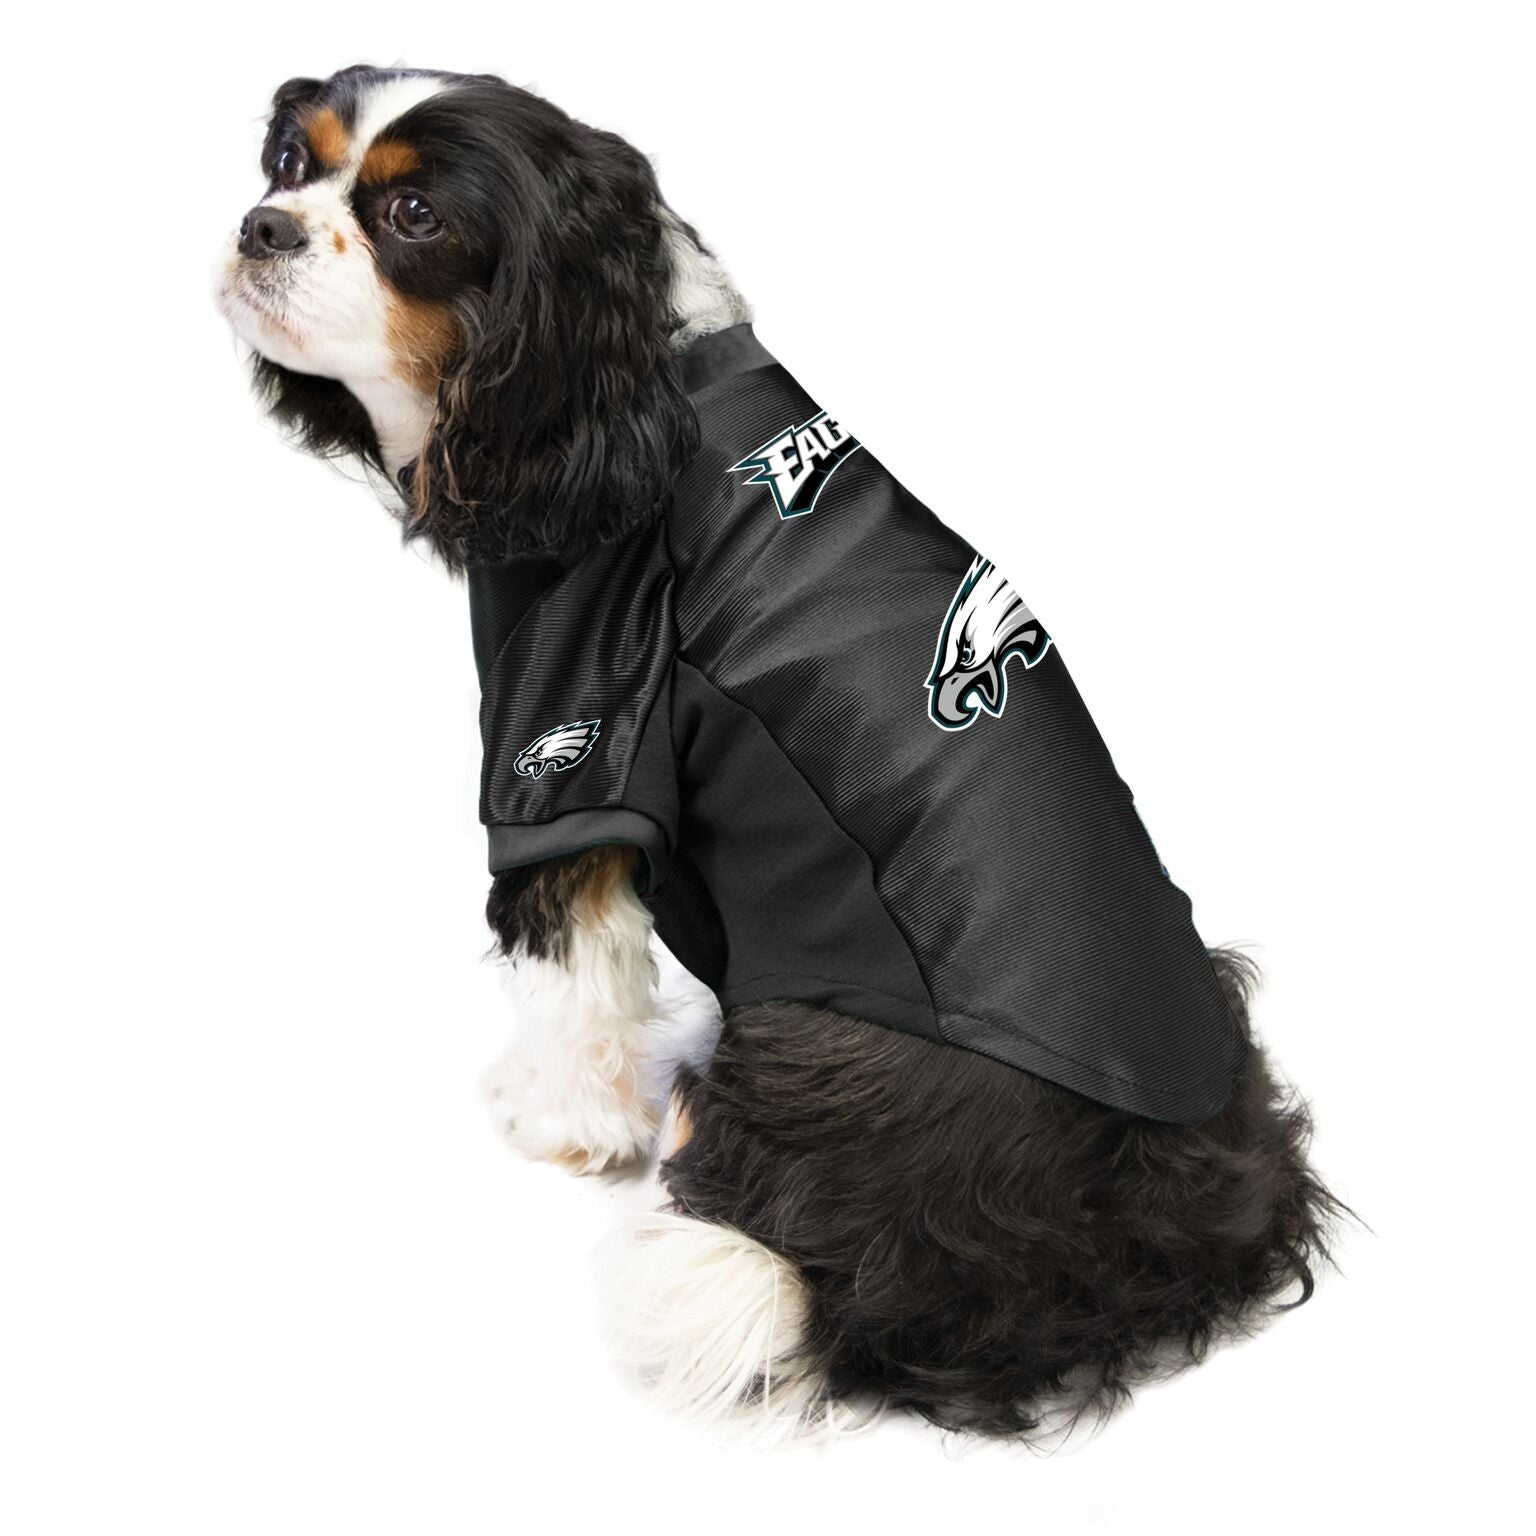 Eagles outfit for dogs